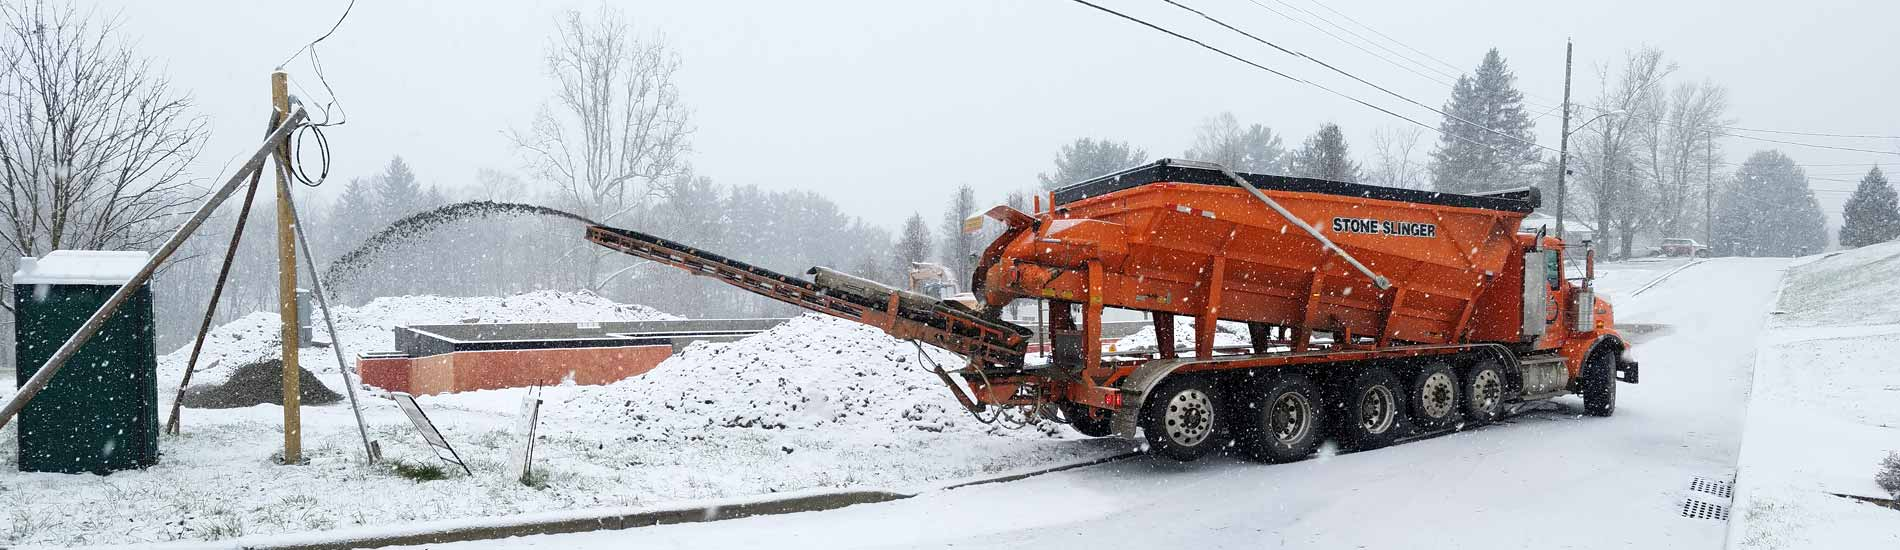 Stone slinger placing aggregate during heavy snow fall